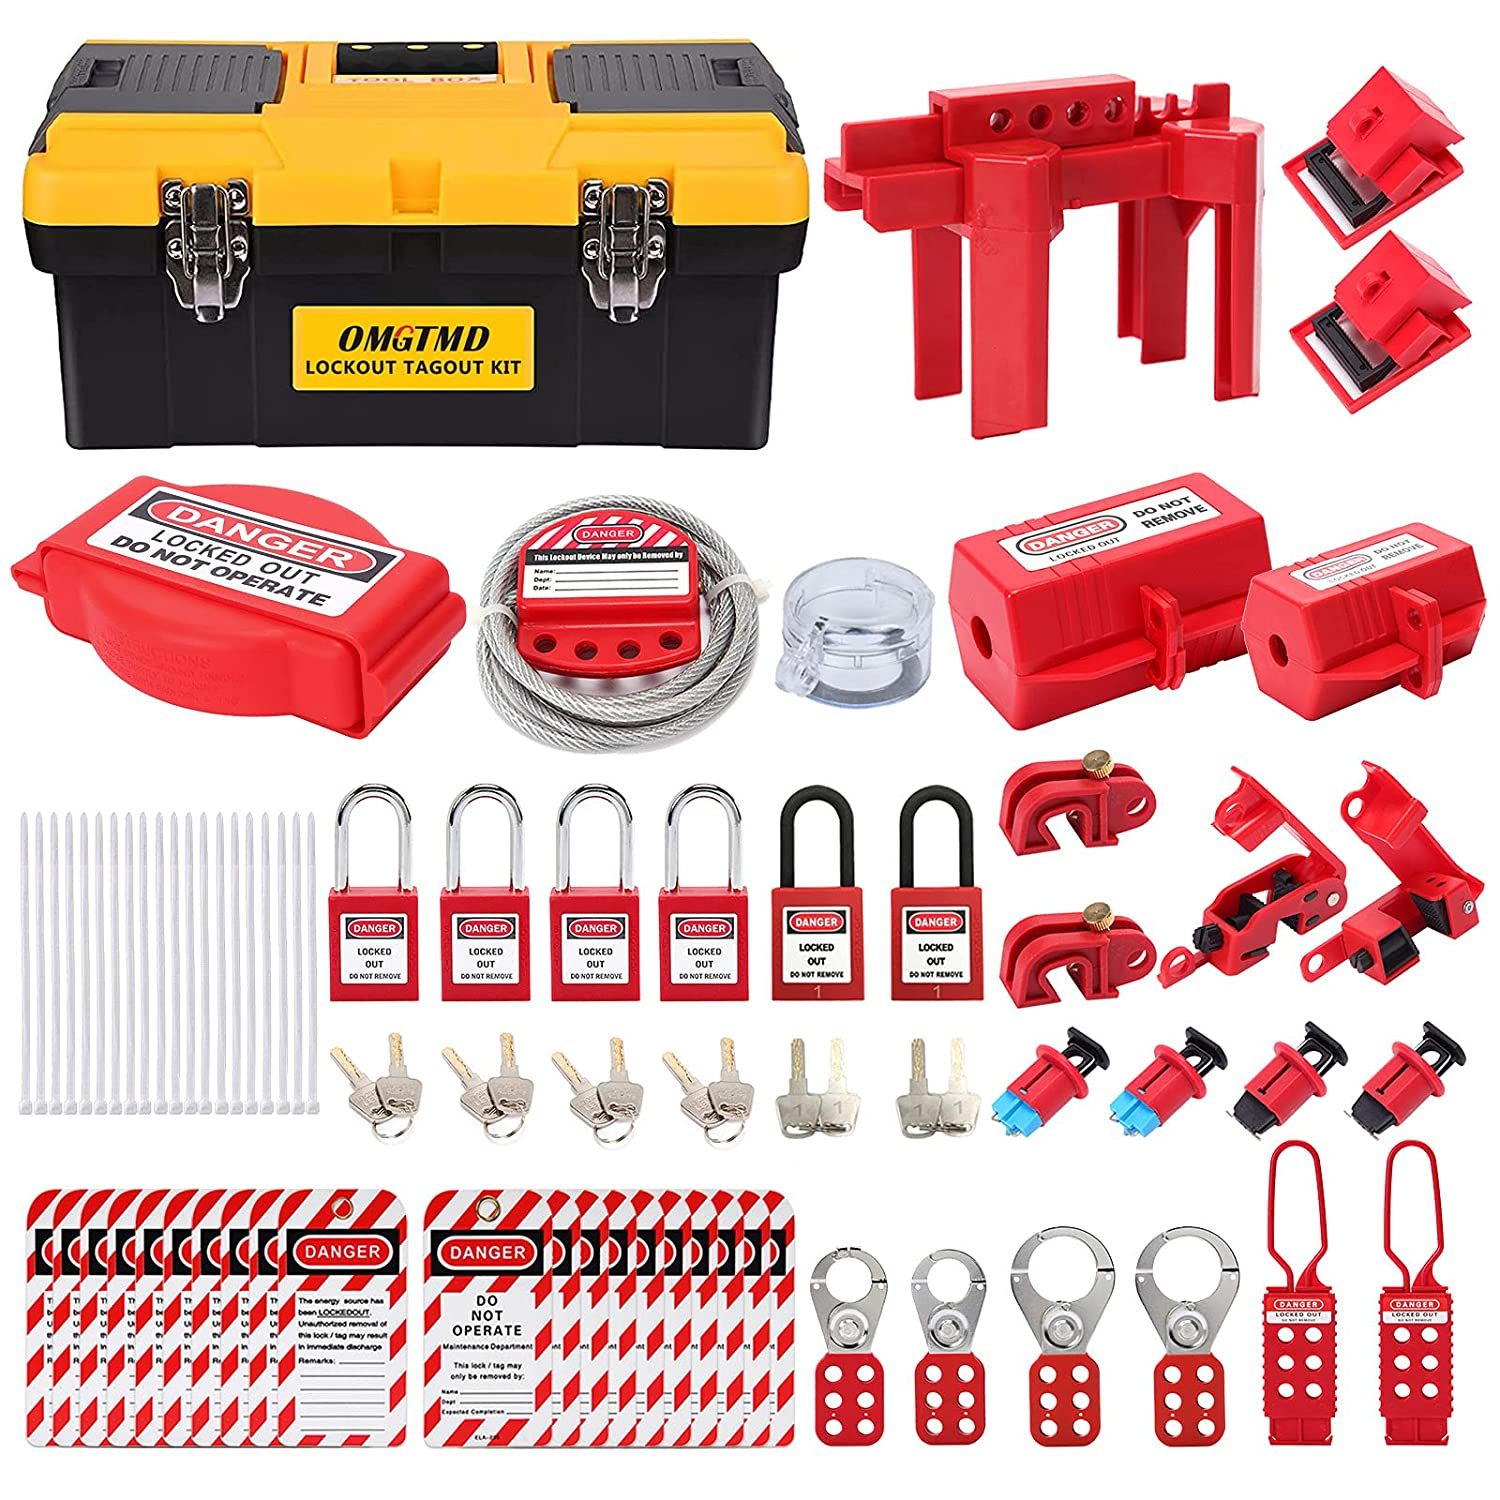 OMGTMD Lockout Tagout Kit Circuit Free Shipping New Ball Device Sales results No. 1 Breaker Va